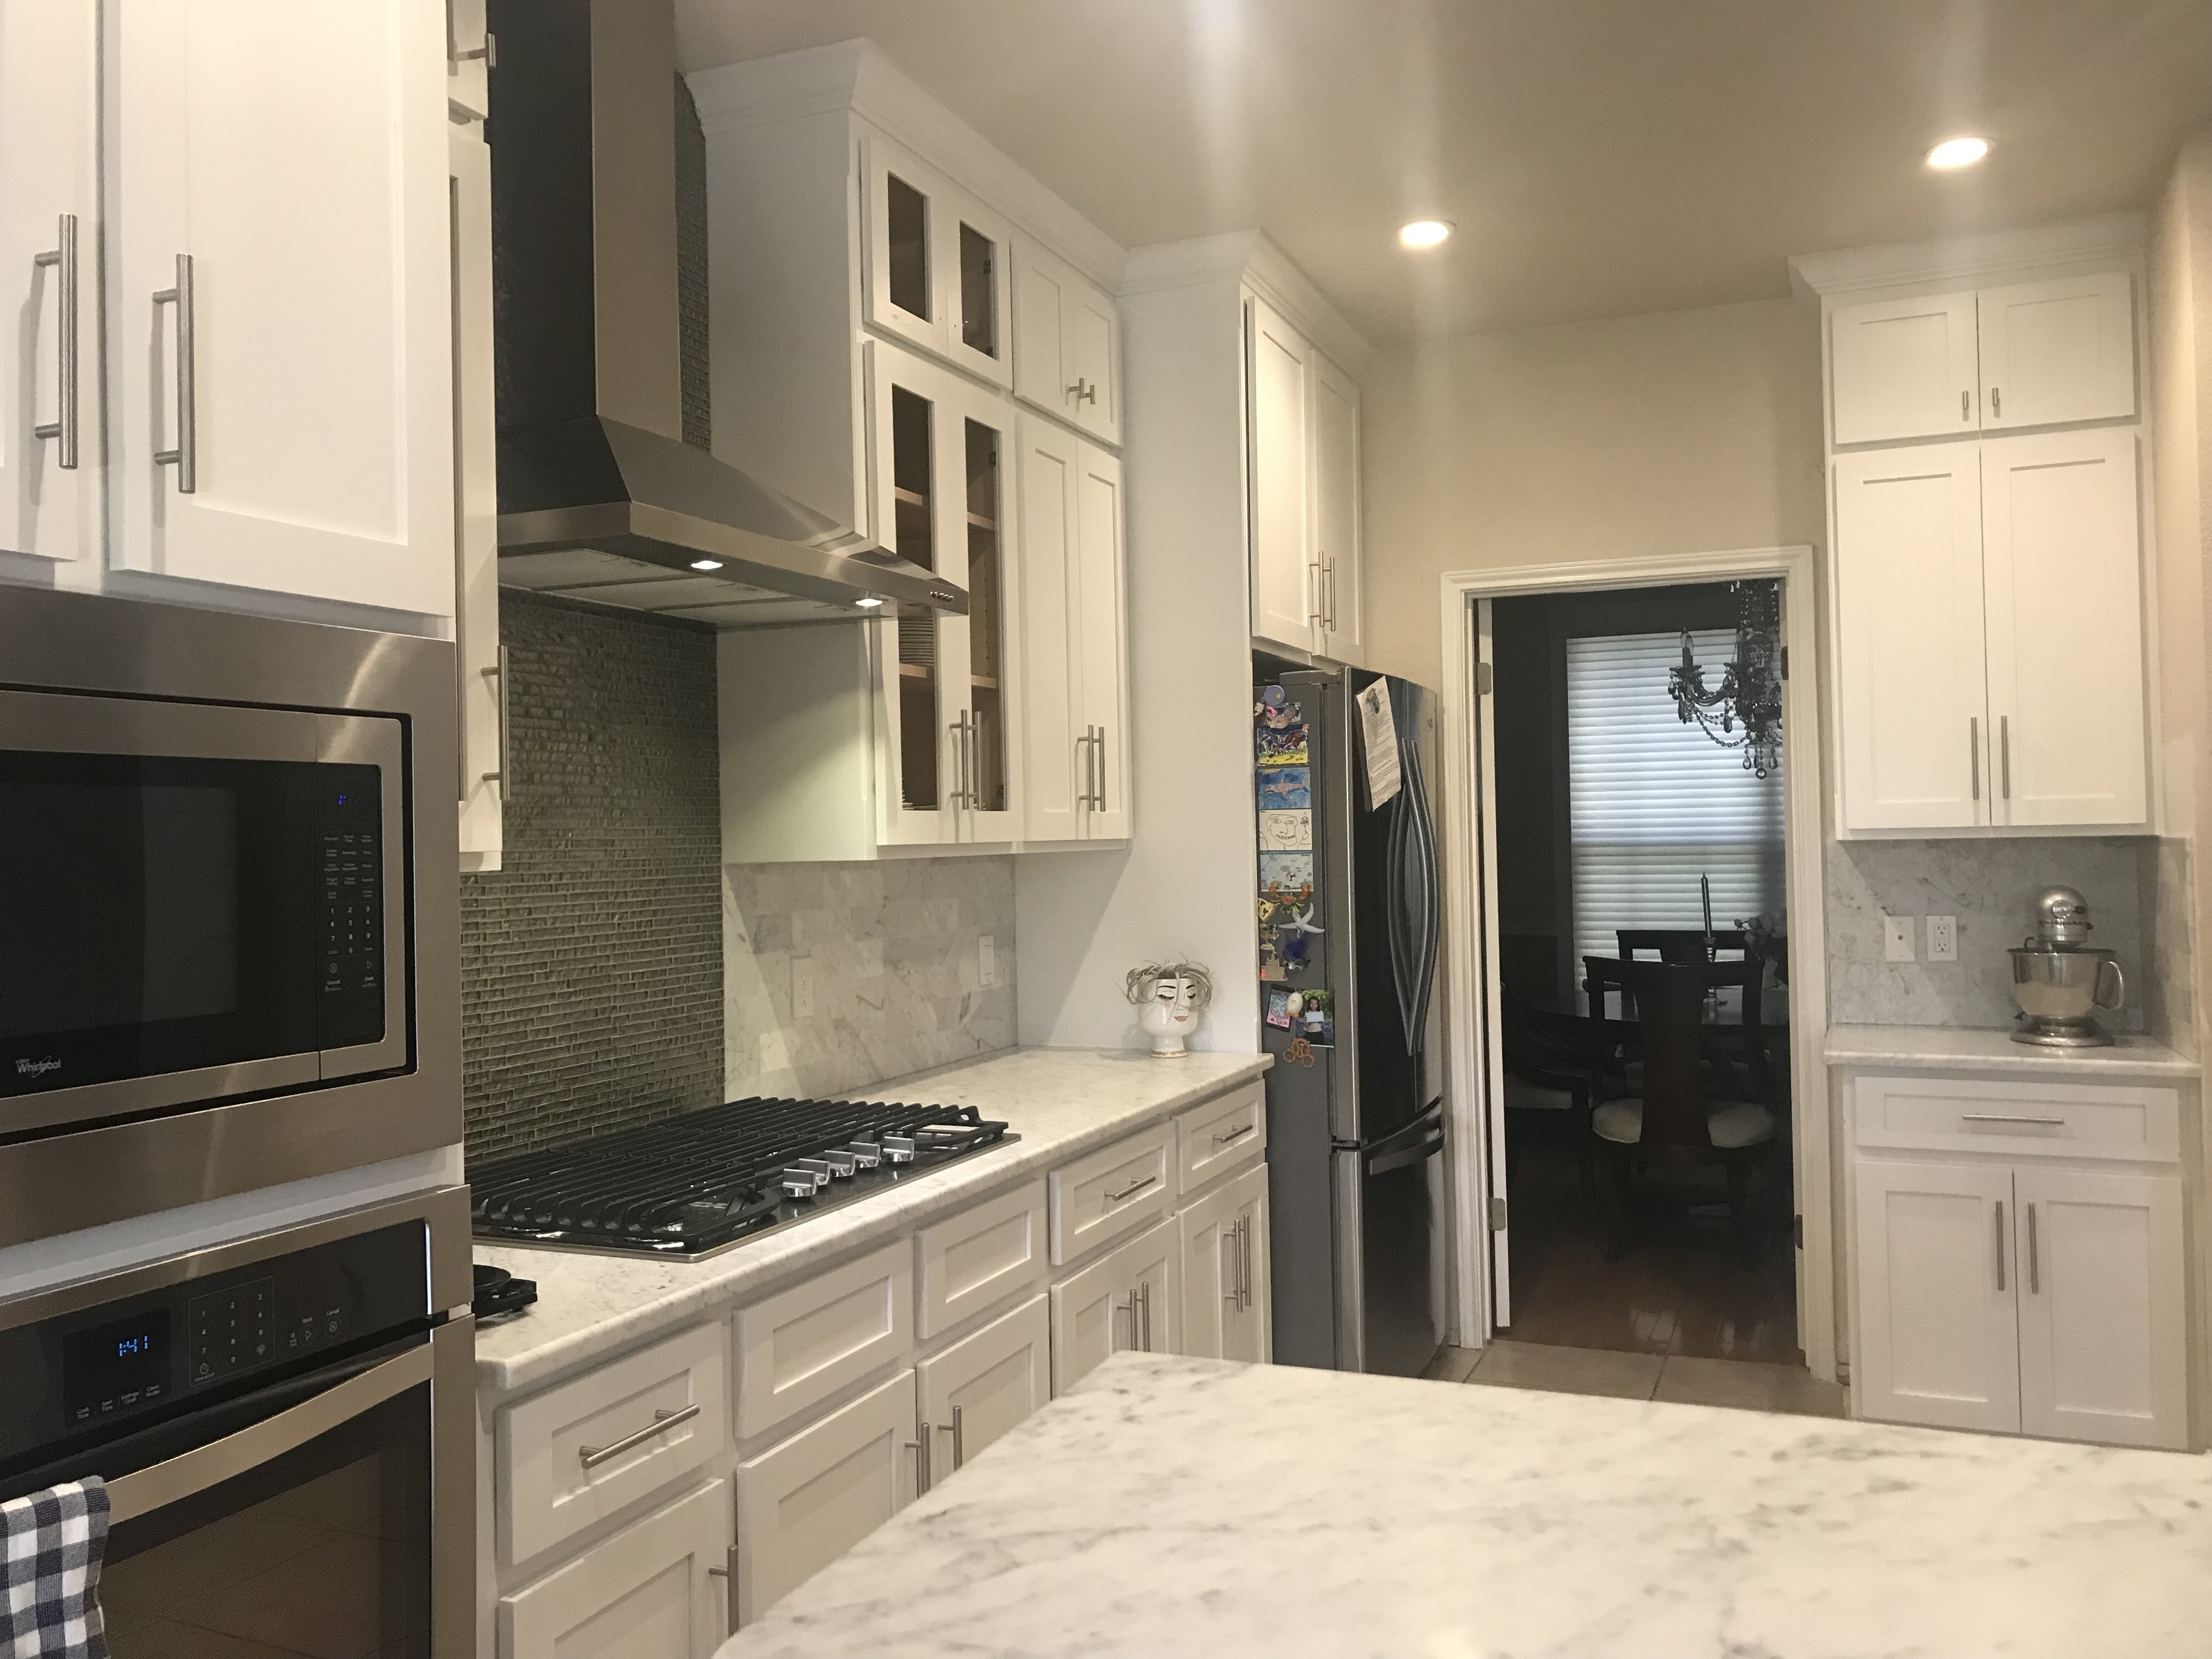 Photo of Custom Built Kitchen Cabinets